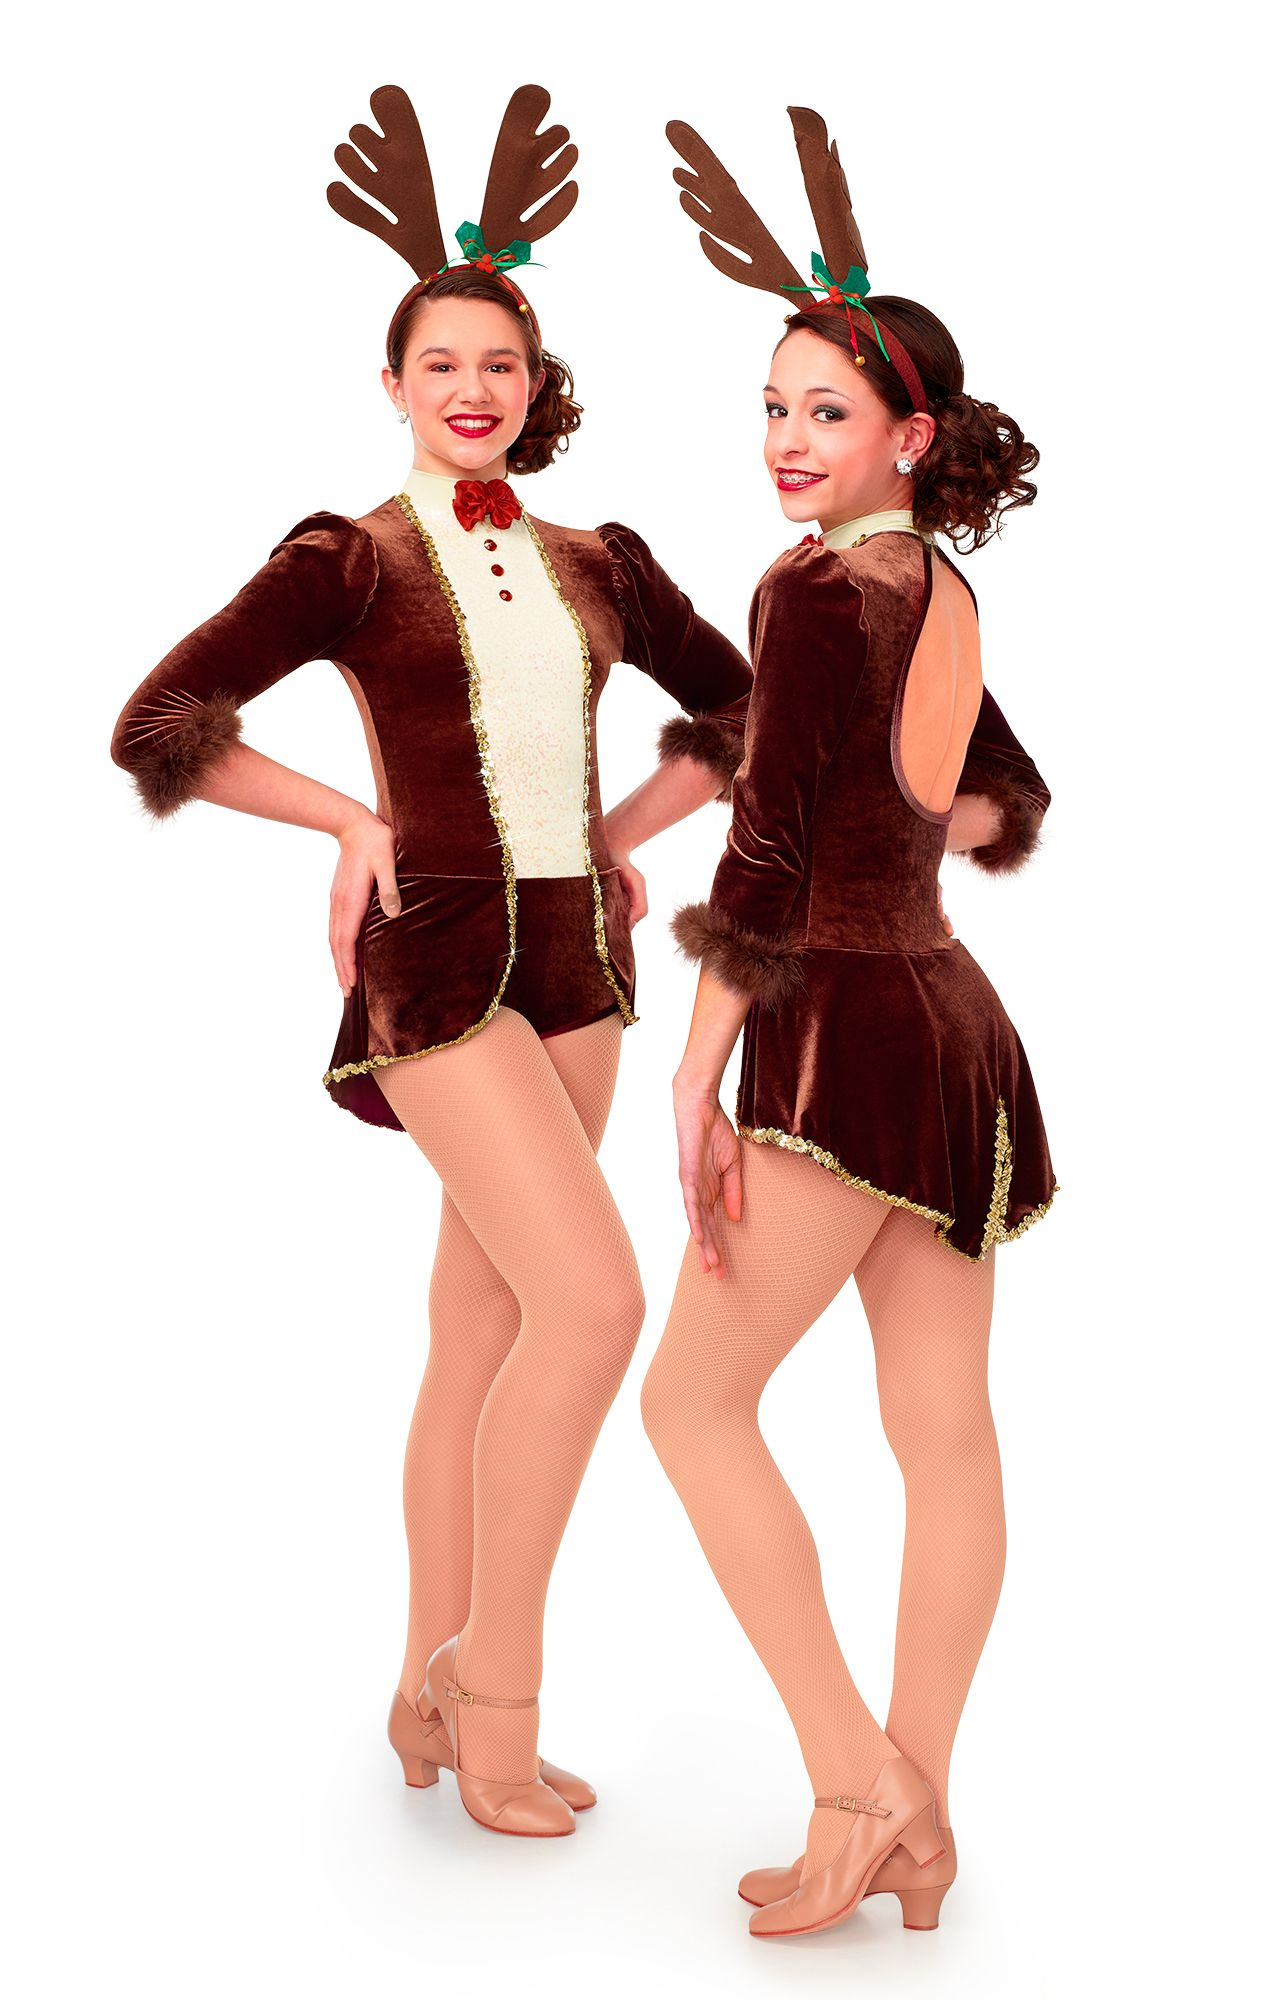 Your Students Can Prance With Style Wearing This Reindeer Costume